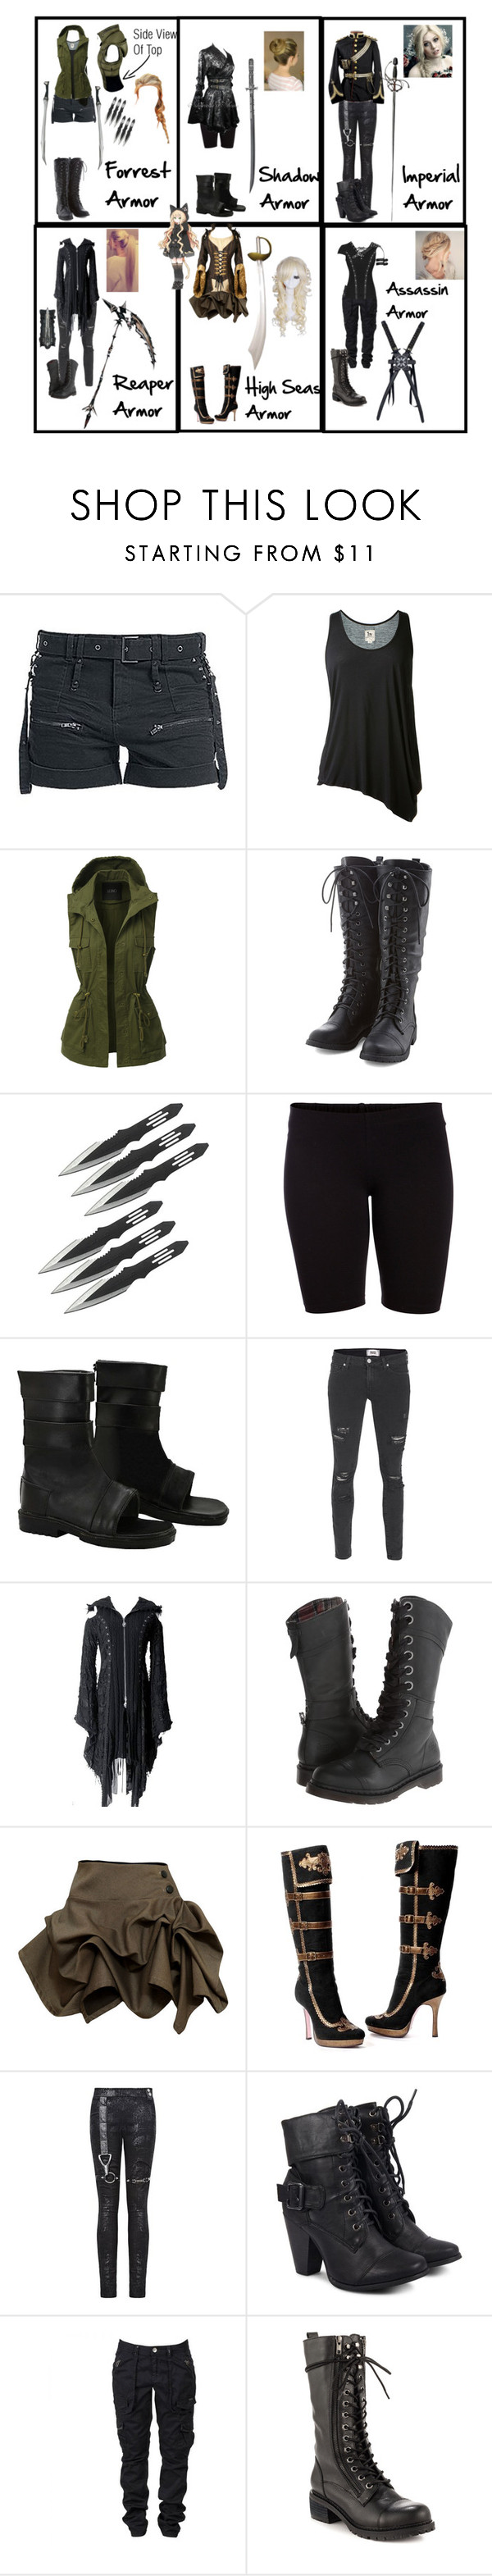 """Luca's Different Armor (Fairy Tail OC #1)"" by chibi-space-gal ❤ liked on Polyvore featuring L'Agence, LE3NO, Pieces, Hell Bunny, Paige Denim, Dr. Martens, Kelly Ewing and Kelsi Dagger Brooklyn"